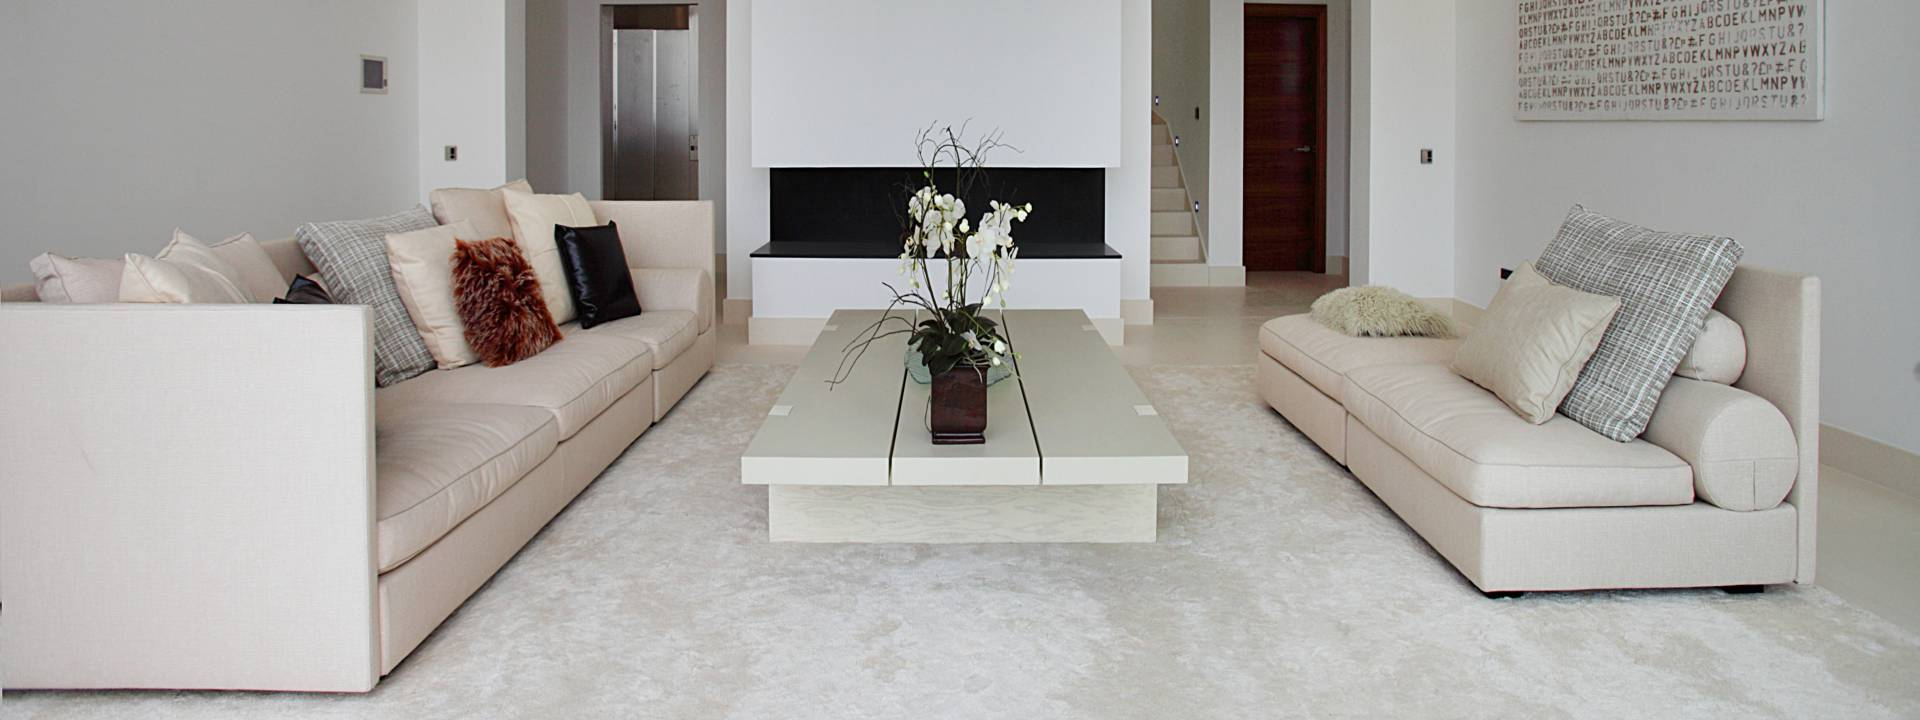 Luxury-villa-Mallorca-living-room-interior-design